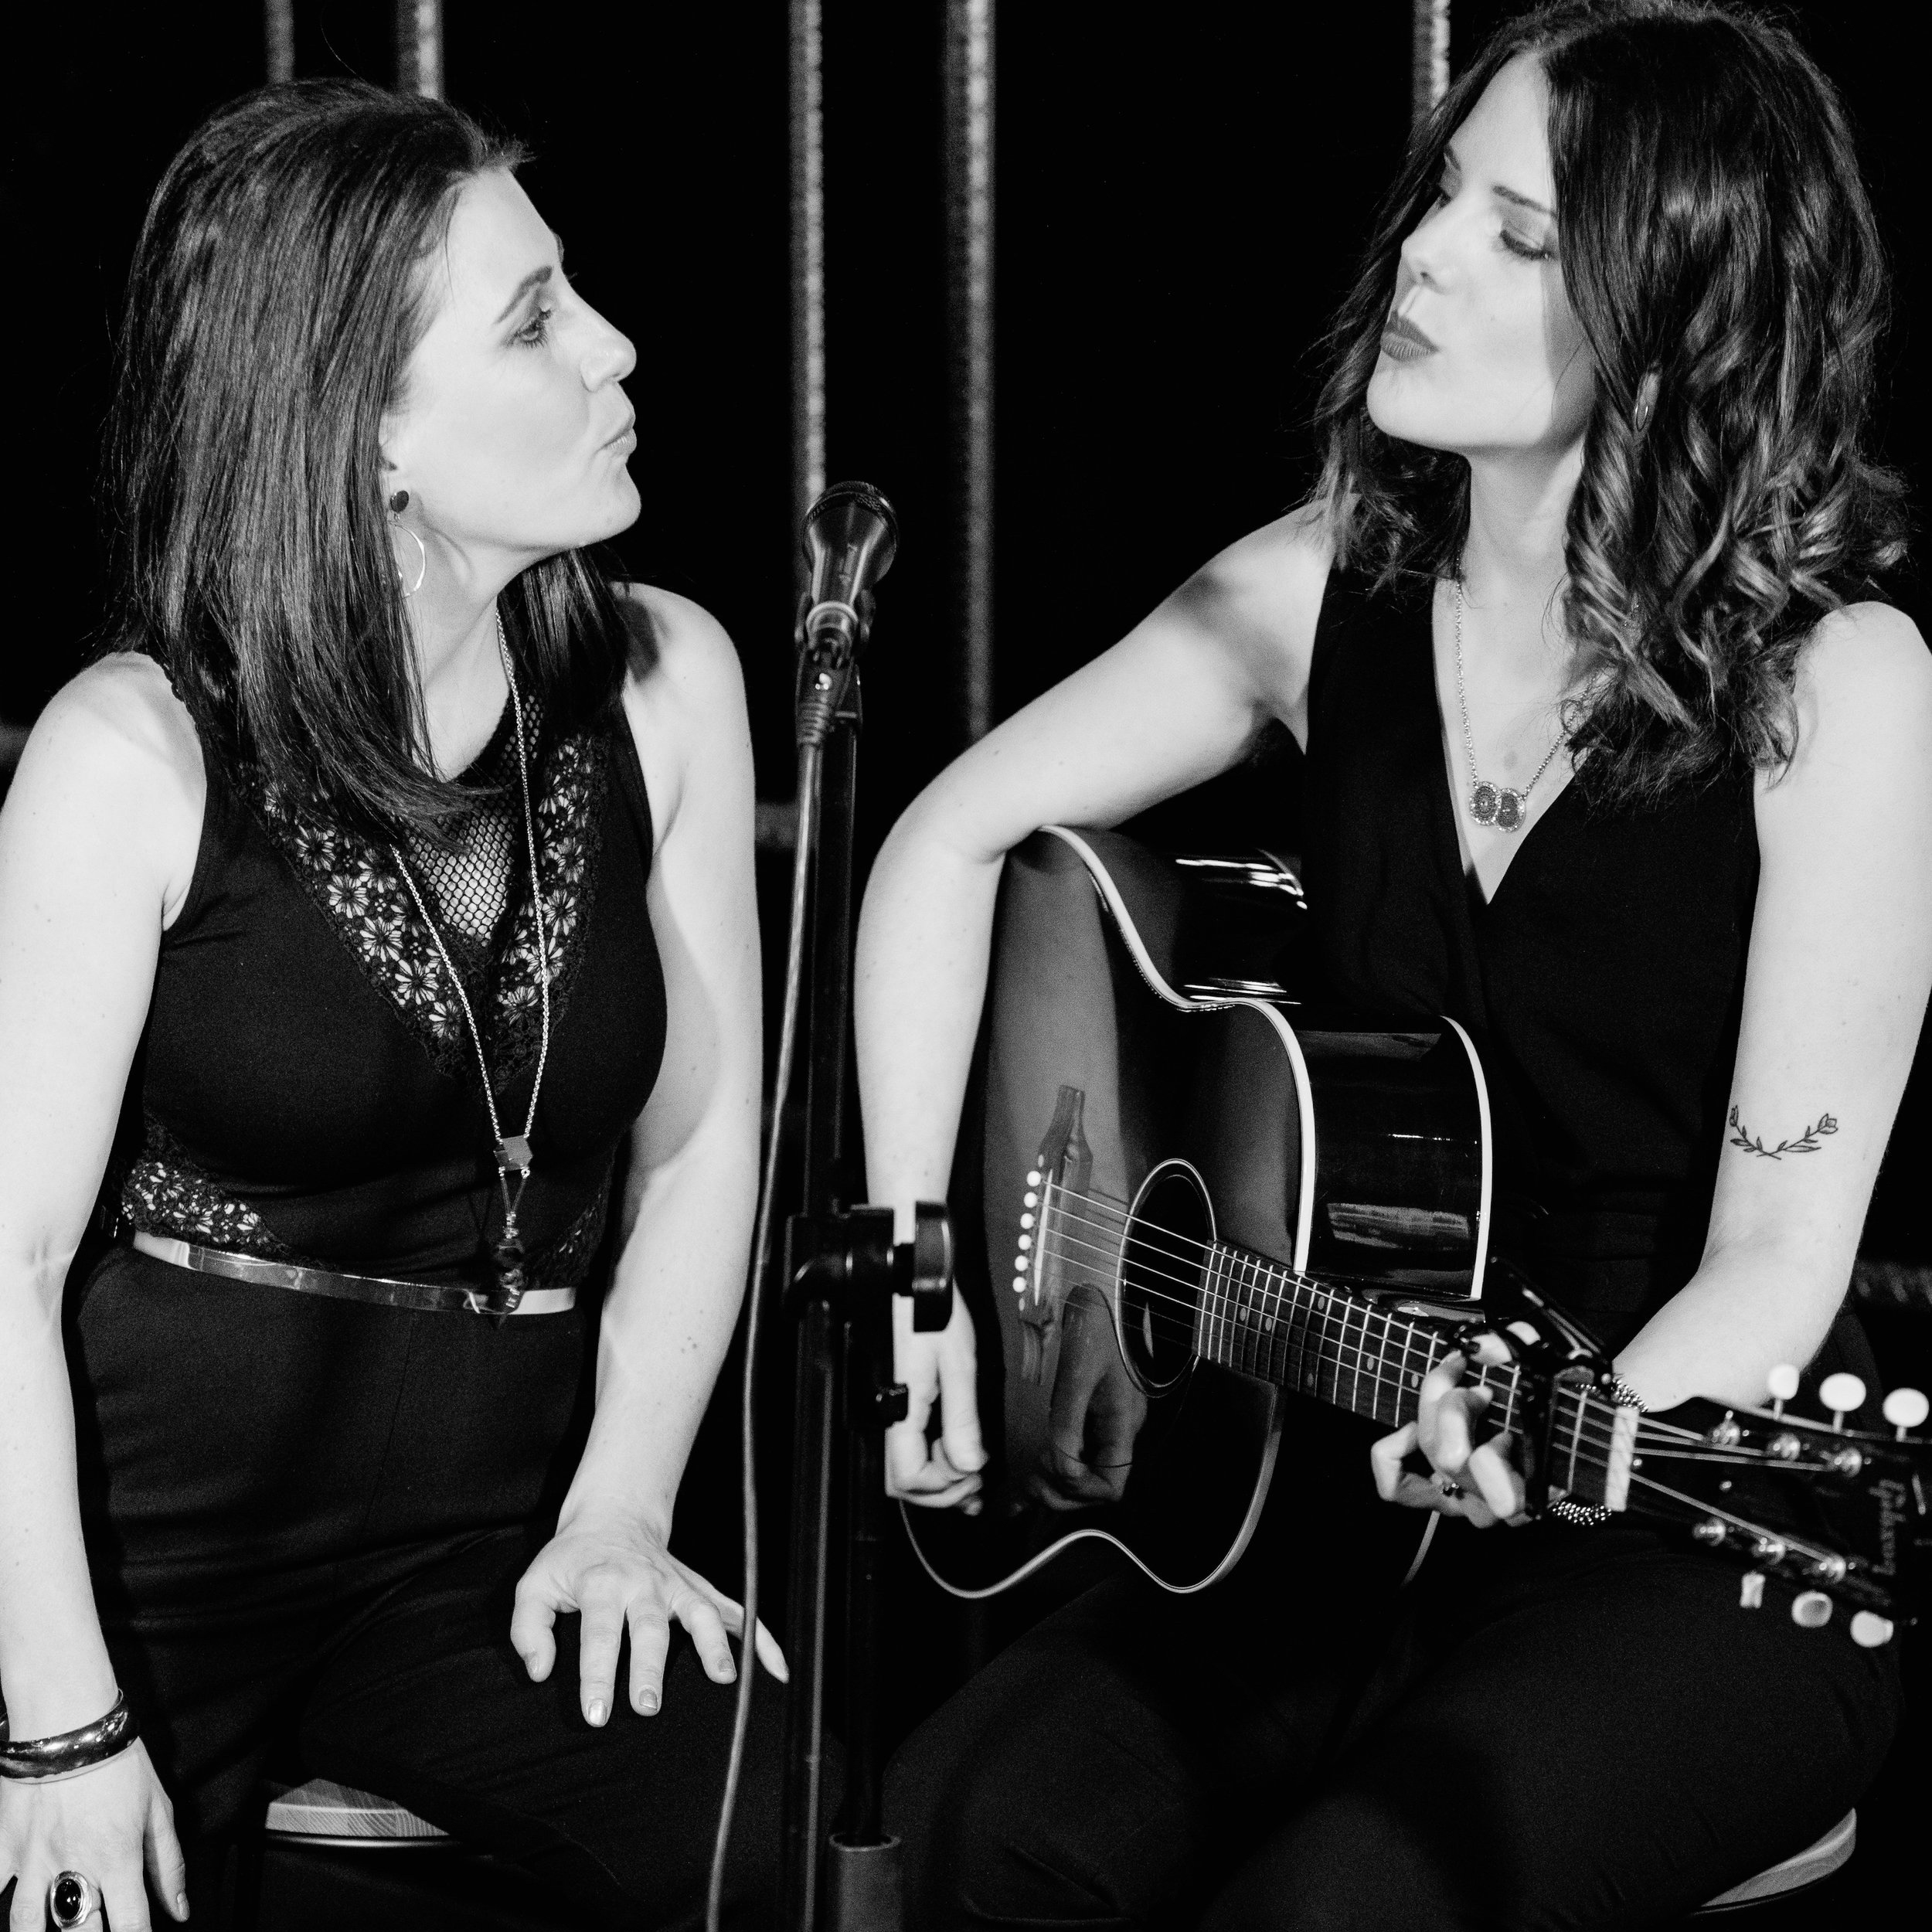 IGNITION - DUOVocals & GuitarStarting from £450Acoustic performance of hit songs with the ability to customise sets to suit the event and style.Perfect for occasions looking for background music to create an atmosphere and entertain guests.Set up & soundcheck time: 1 hour